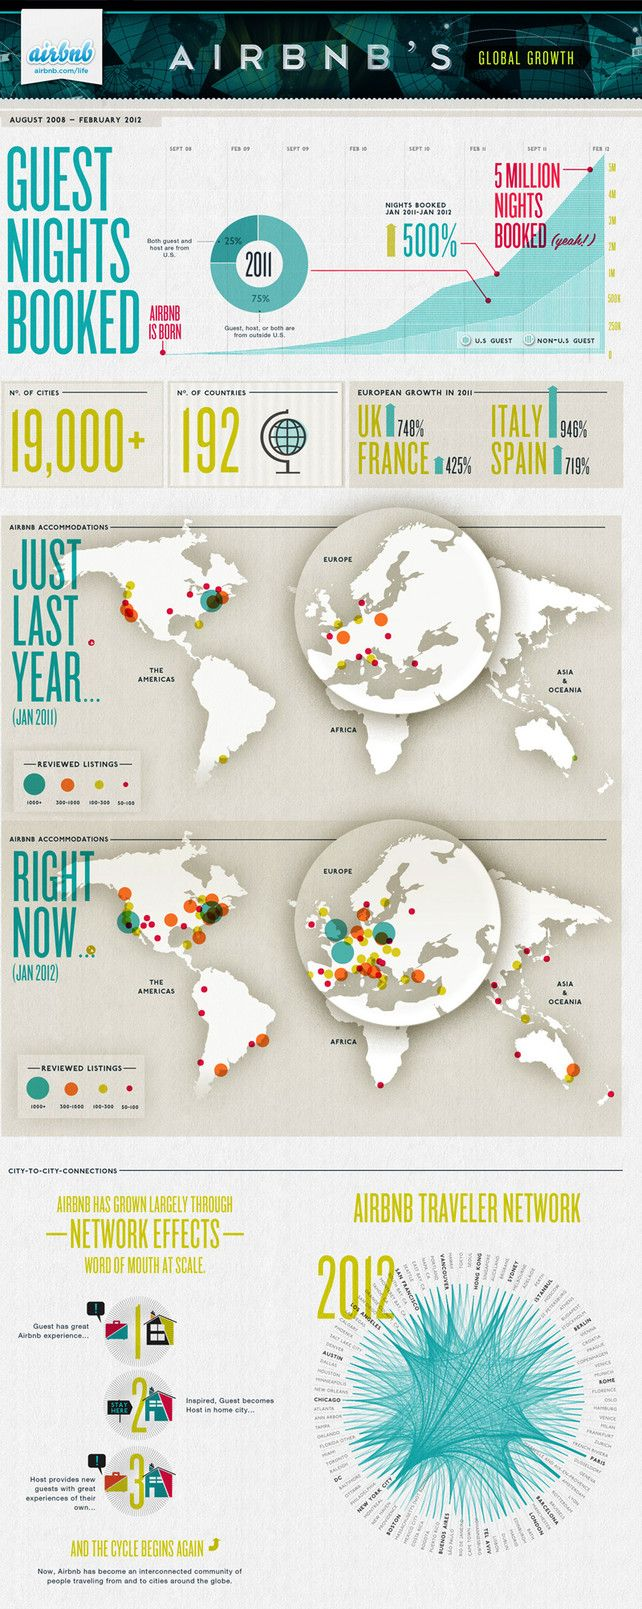 With infographic airbnb turns boring facts into masterful for Graphic design studium